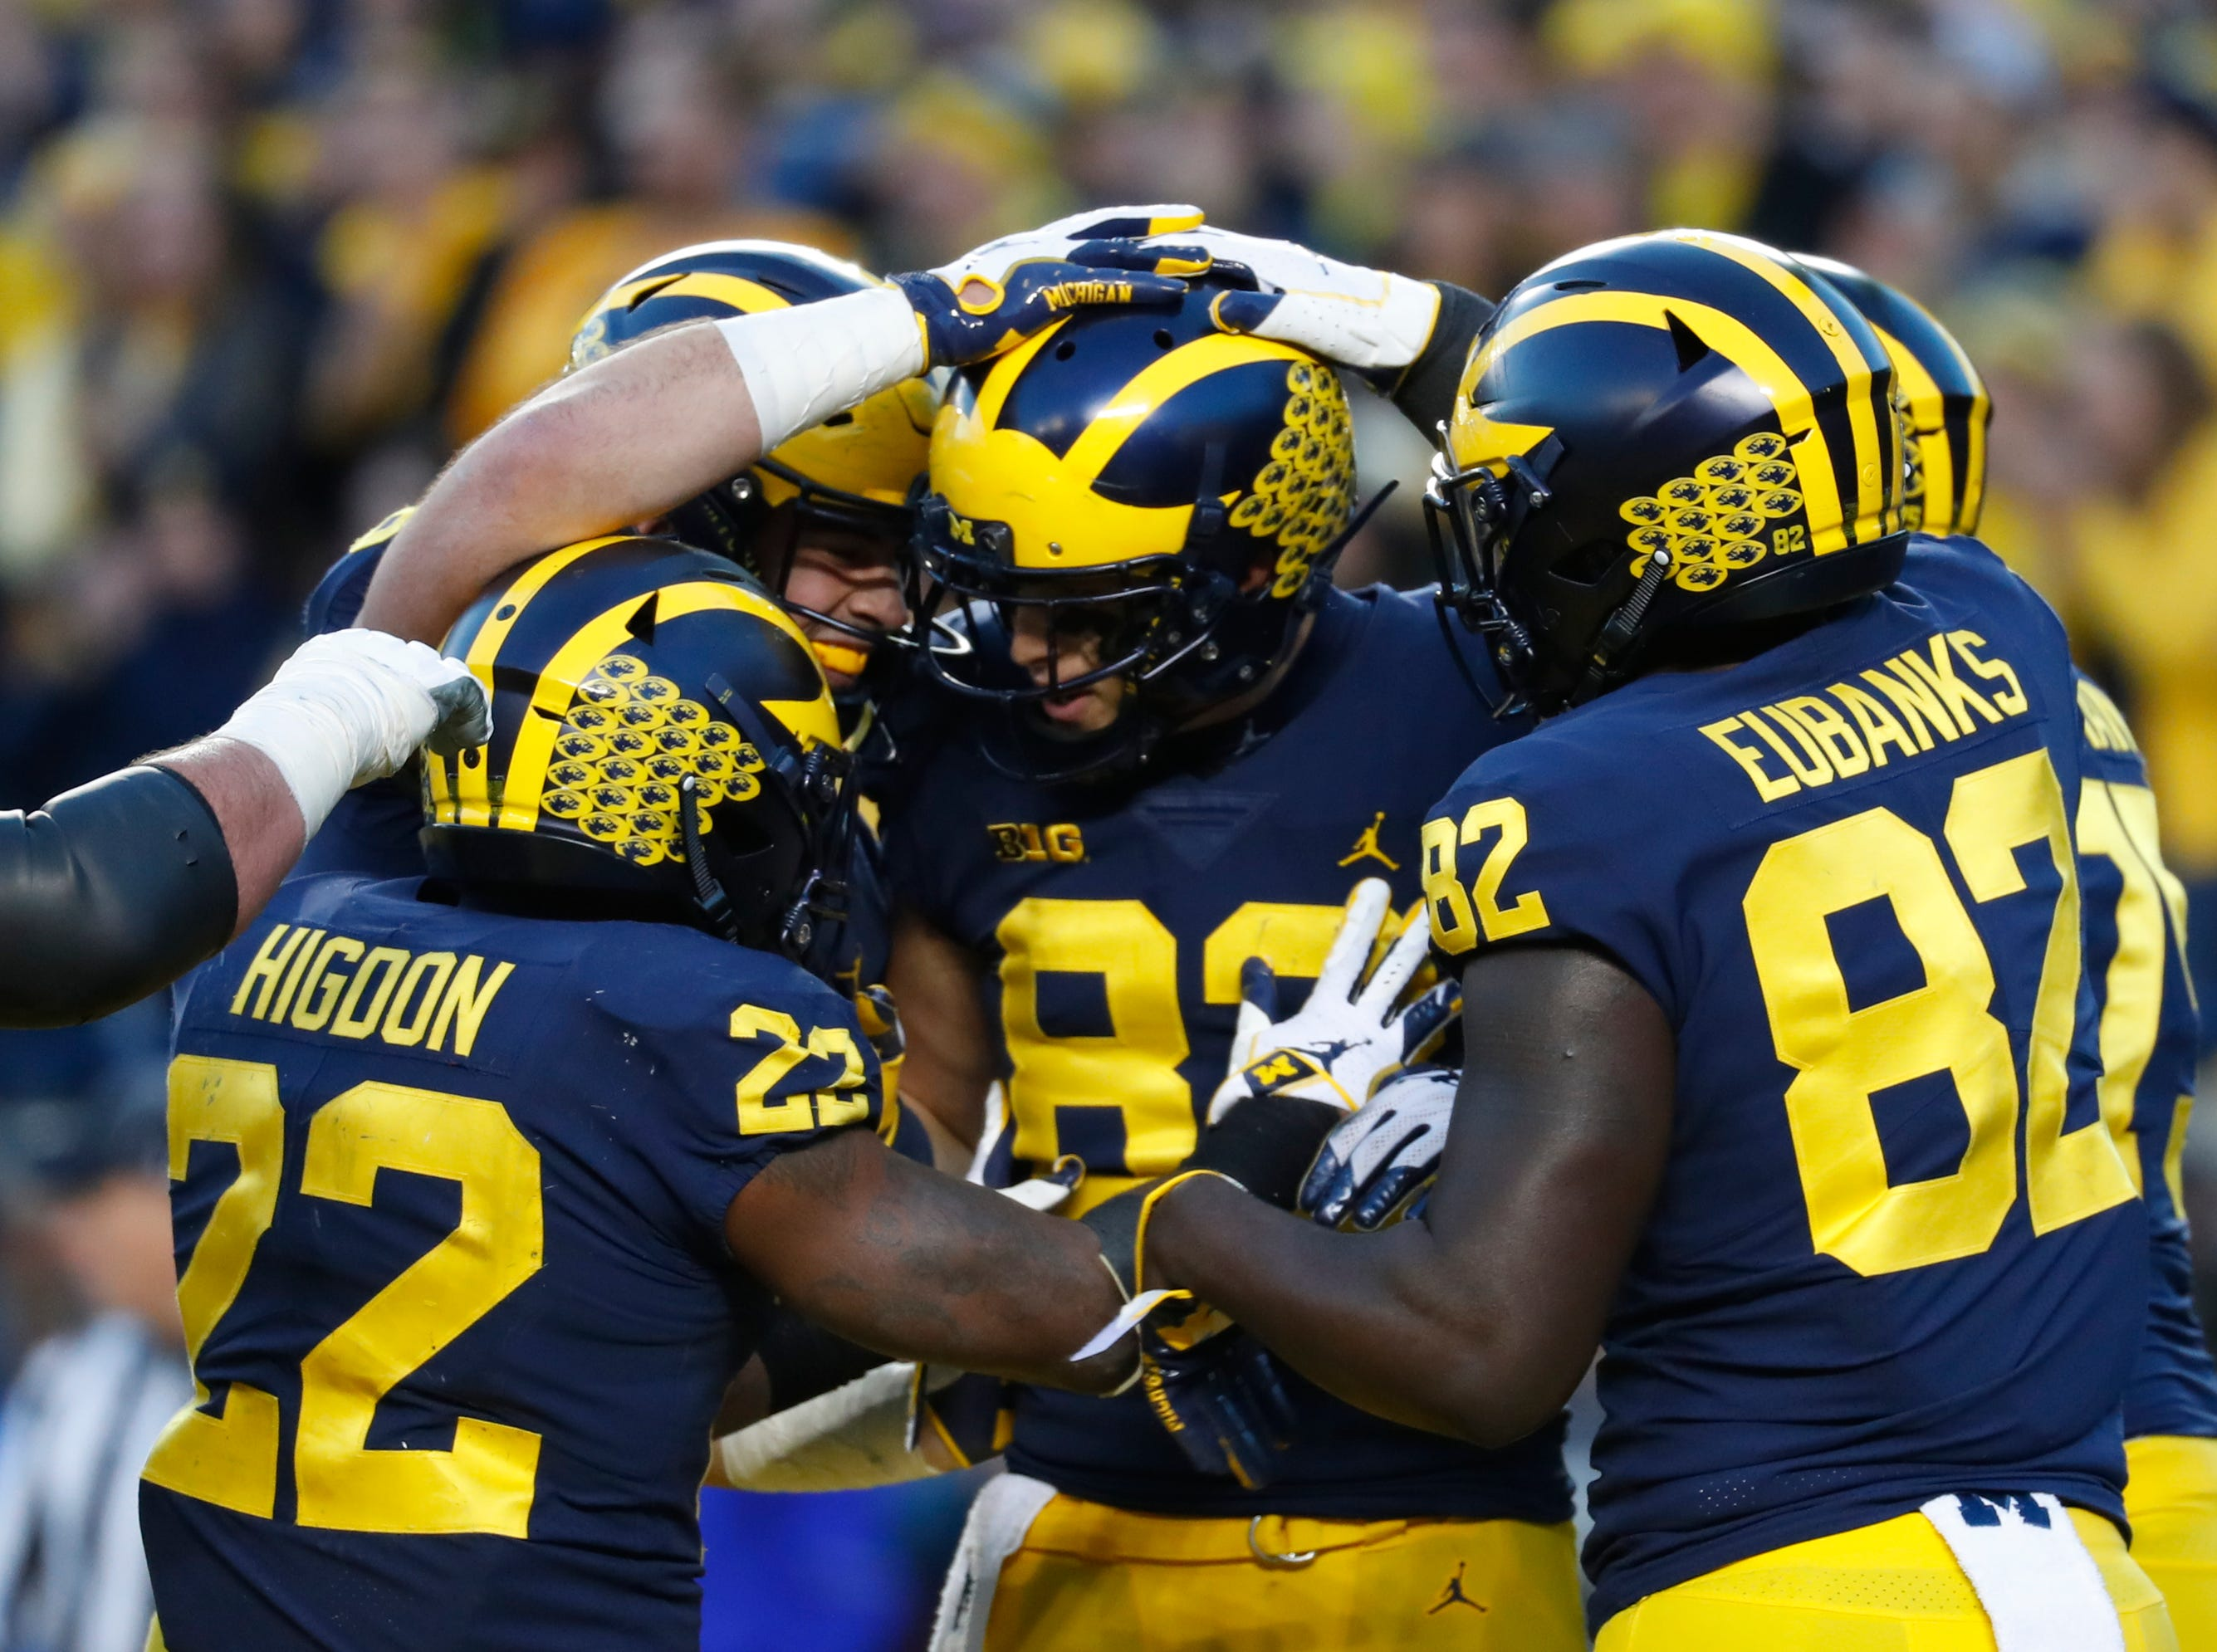 Michigan tight end Zach Gentry (83) celebrates his even-yard touchdown reception with teammates in the second half of an NCAA college football game against Penn State in Ann Arbor, Mich., Saturday, Nov. 3, 2018. (AP Photo/Paul Sancya)